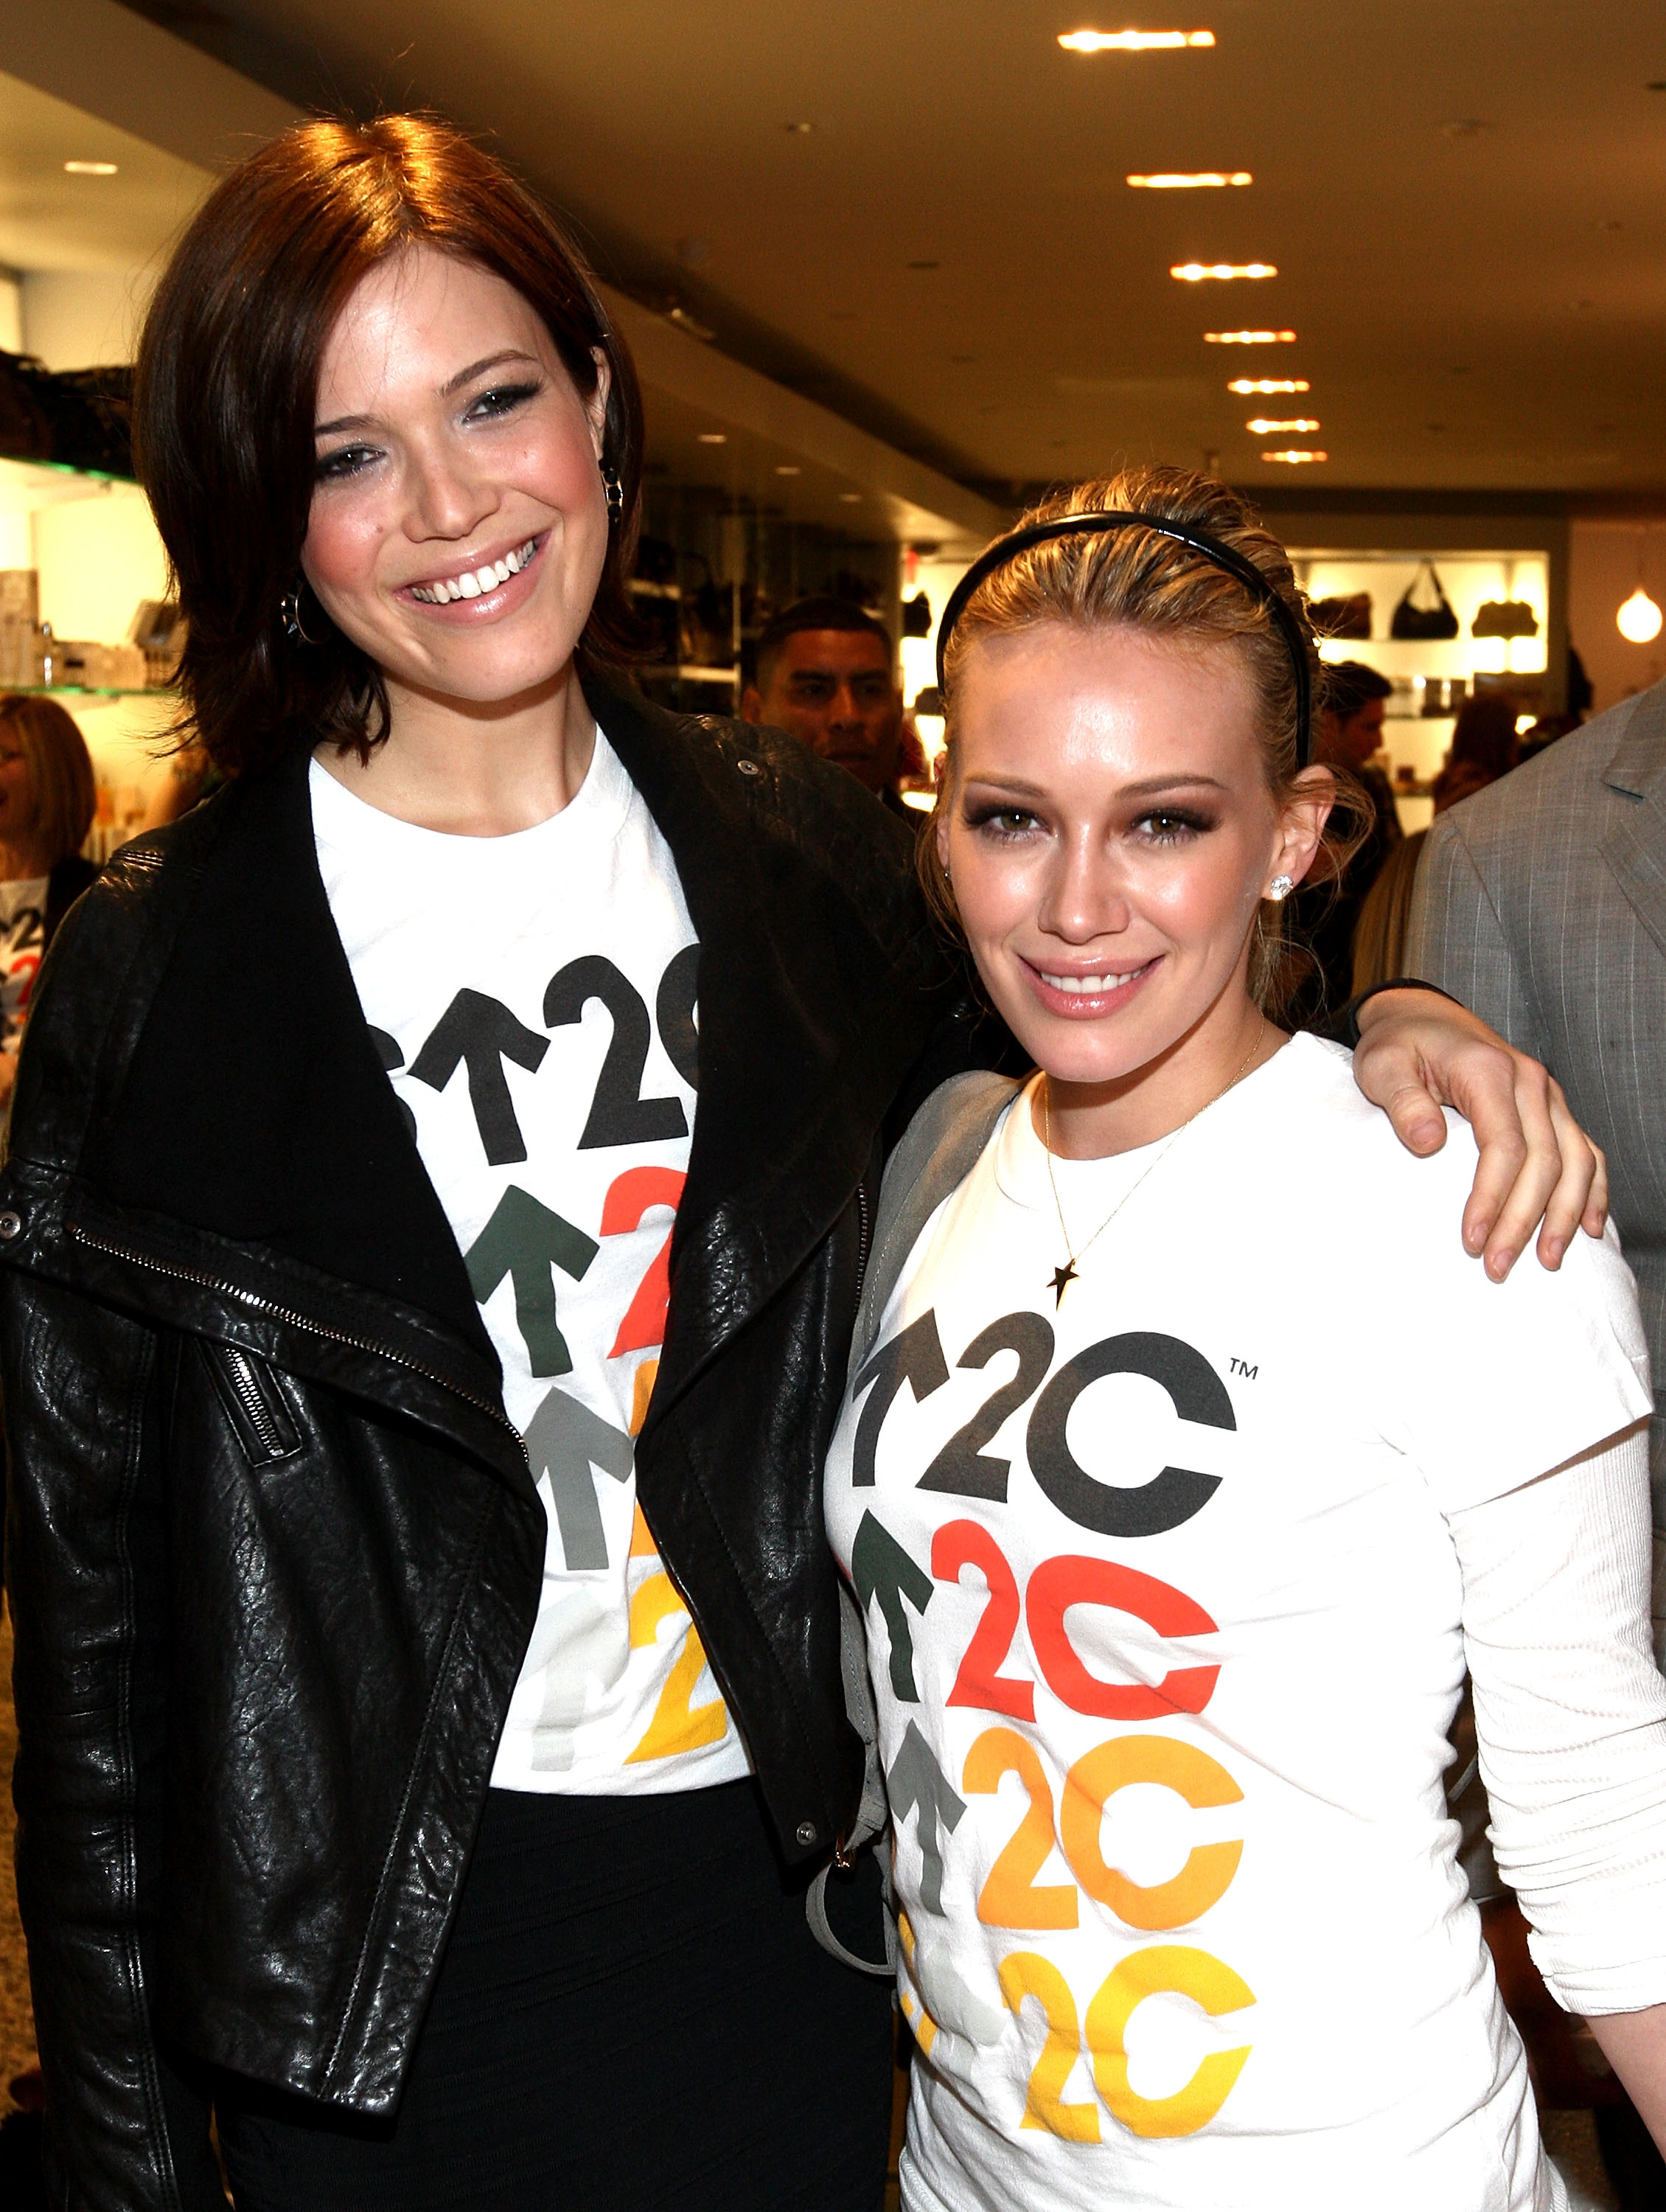 97004_Celebutopia-Mandy_Moore_and_Hilary_Duff-SU2C_merchandise_collection_launch-11_122_899lo.jpg